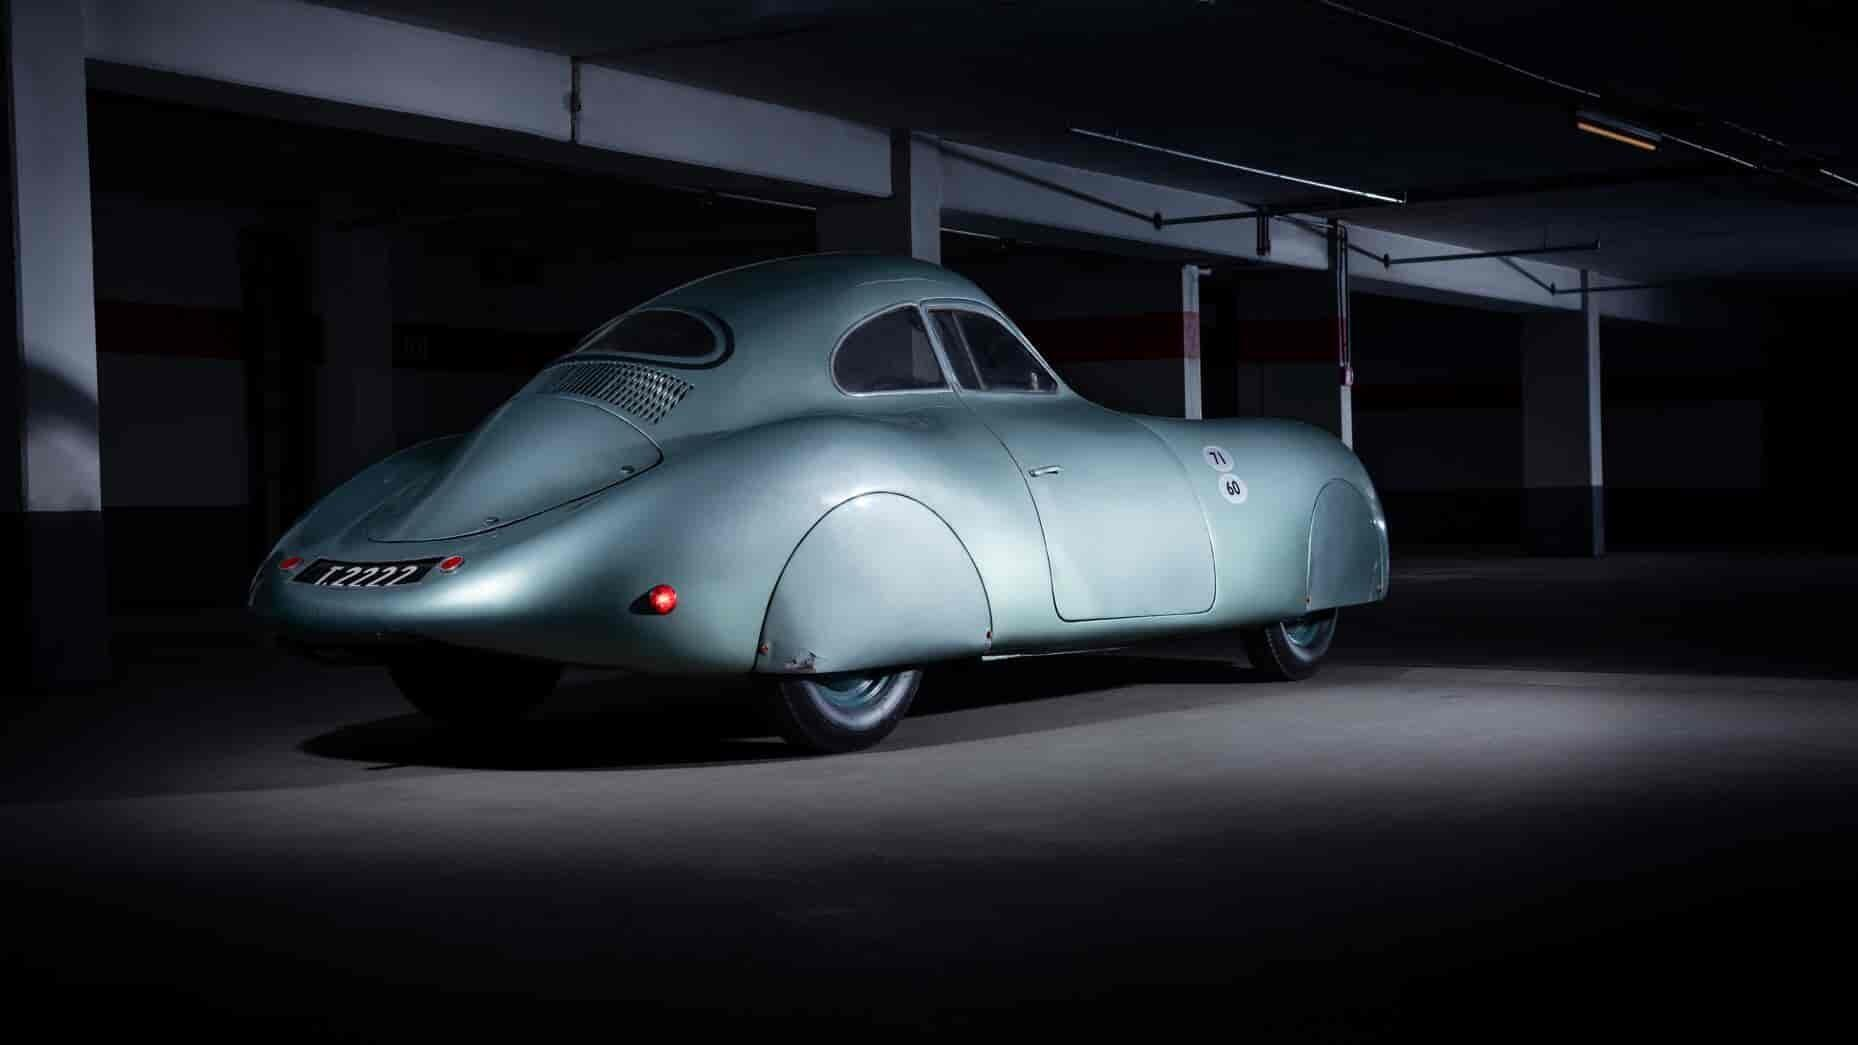 Gallery: the first-ever Porsche is up for sale